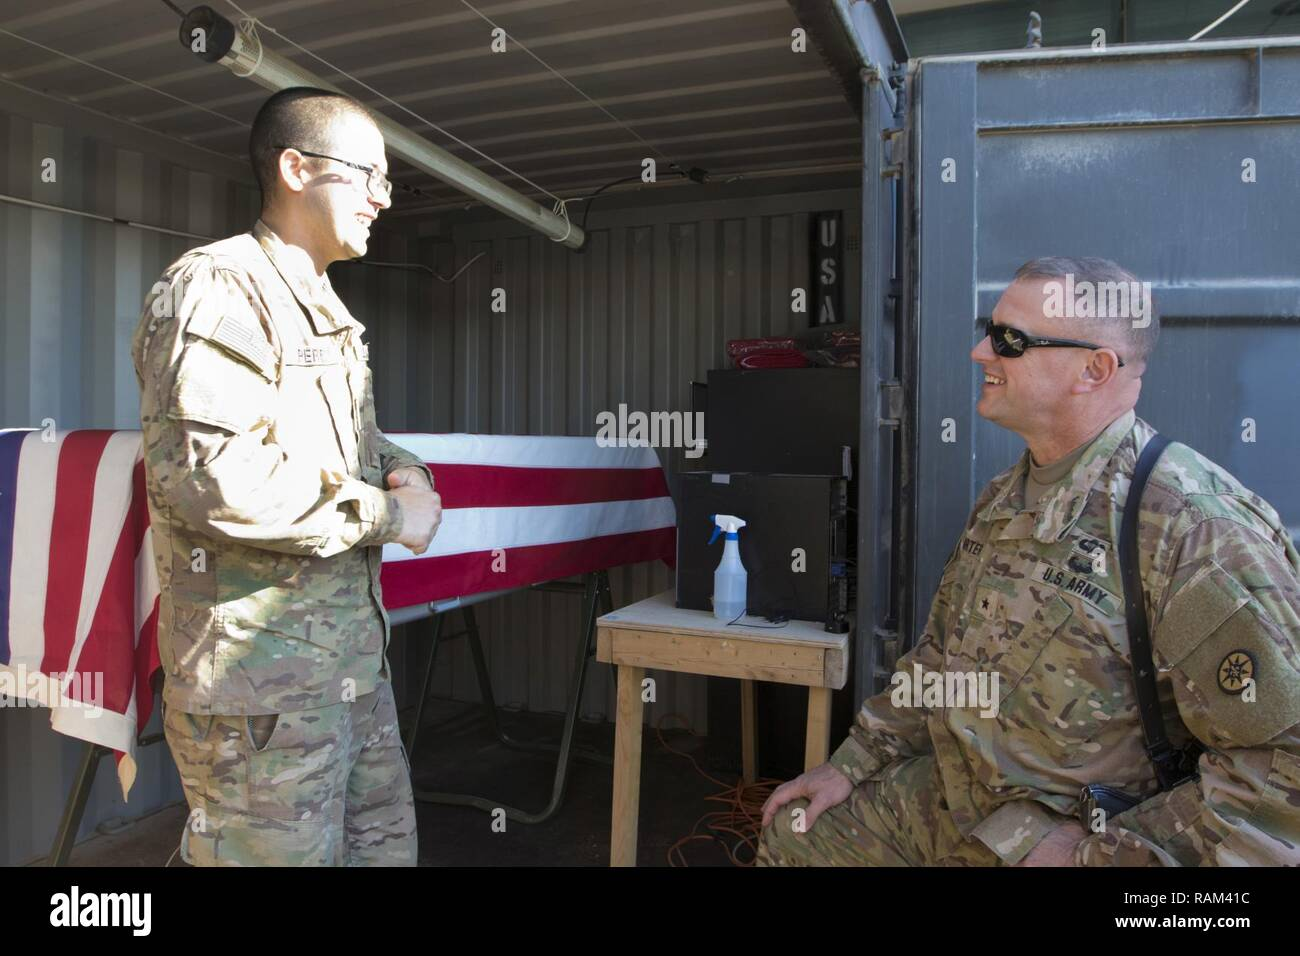 Spc. Jose Perez, a mortuary affairs specialist with the 246th Quartermaster Company (Mortuary Affairs), an U.S. Army Reserve unit based out of Mayaguez, Puerto Rico, (left), explains the capabilities of a Mobile Integrated Remains Collections System (MIRCS) to Brig. Gen. Robert D. Harter, deputy commanding general of the 1st Sustainment Command (Theater) / commanding general of the 316th Sustainment Command (Expeditionary), (right), in Erbil, Iraq on February 3, 2017. - Stock Image